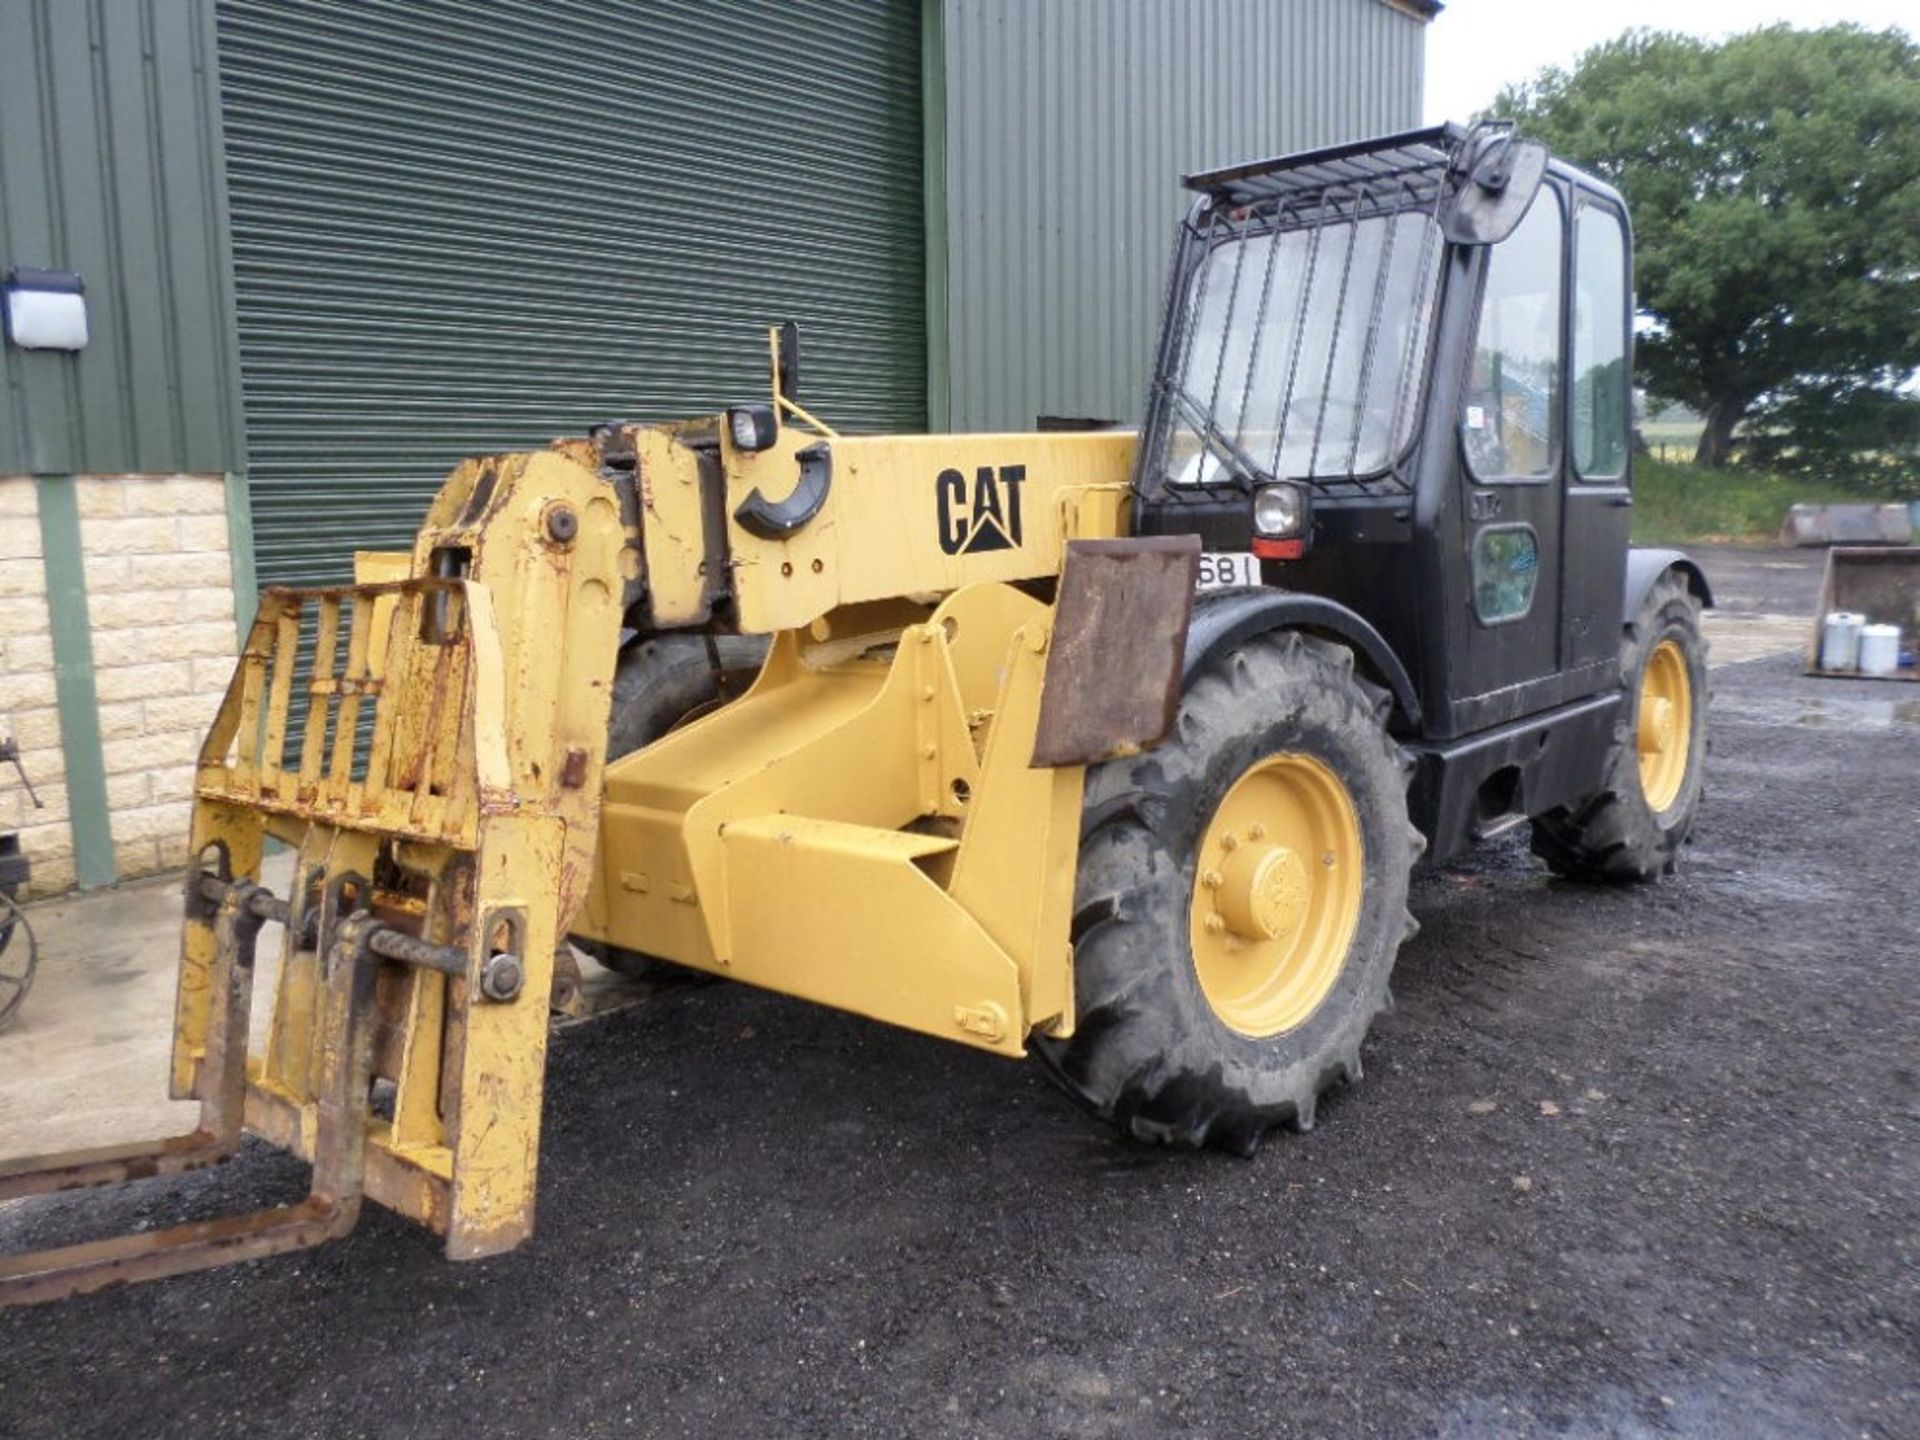 1999 CAT TH63 TELEPORTER (LOCATON SHEFFIELD) 5612 HOURS (RING FOR COLLECTION DETAILS) [+ VAT] - Image 2 of 13